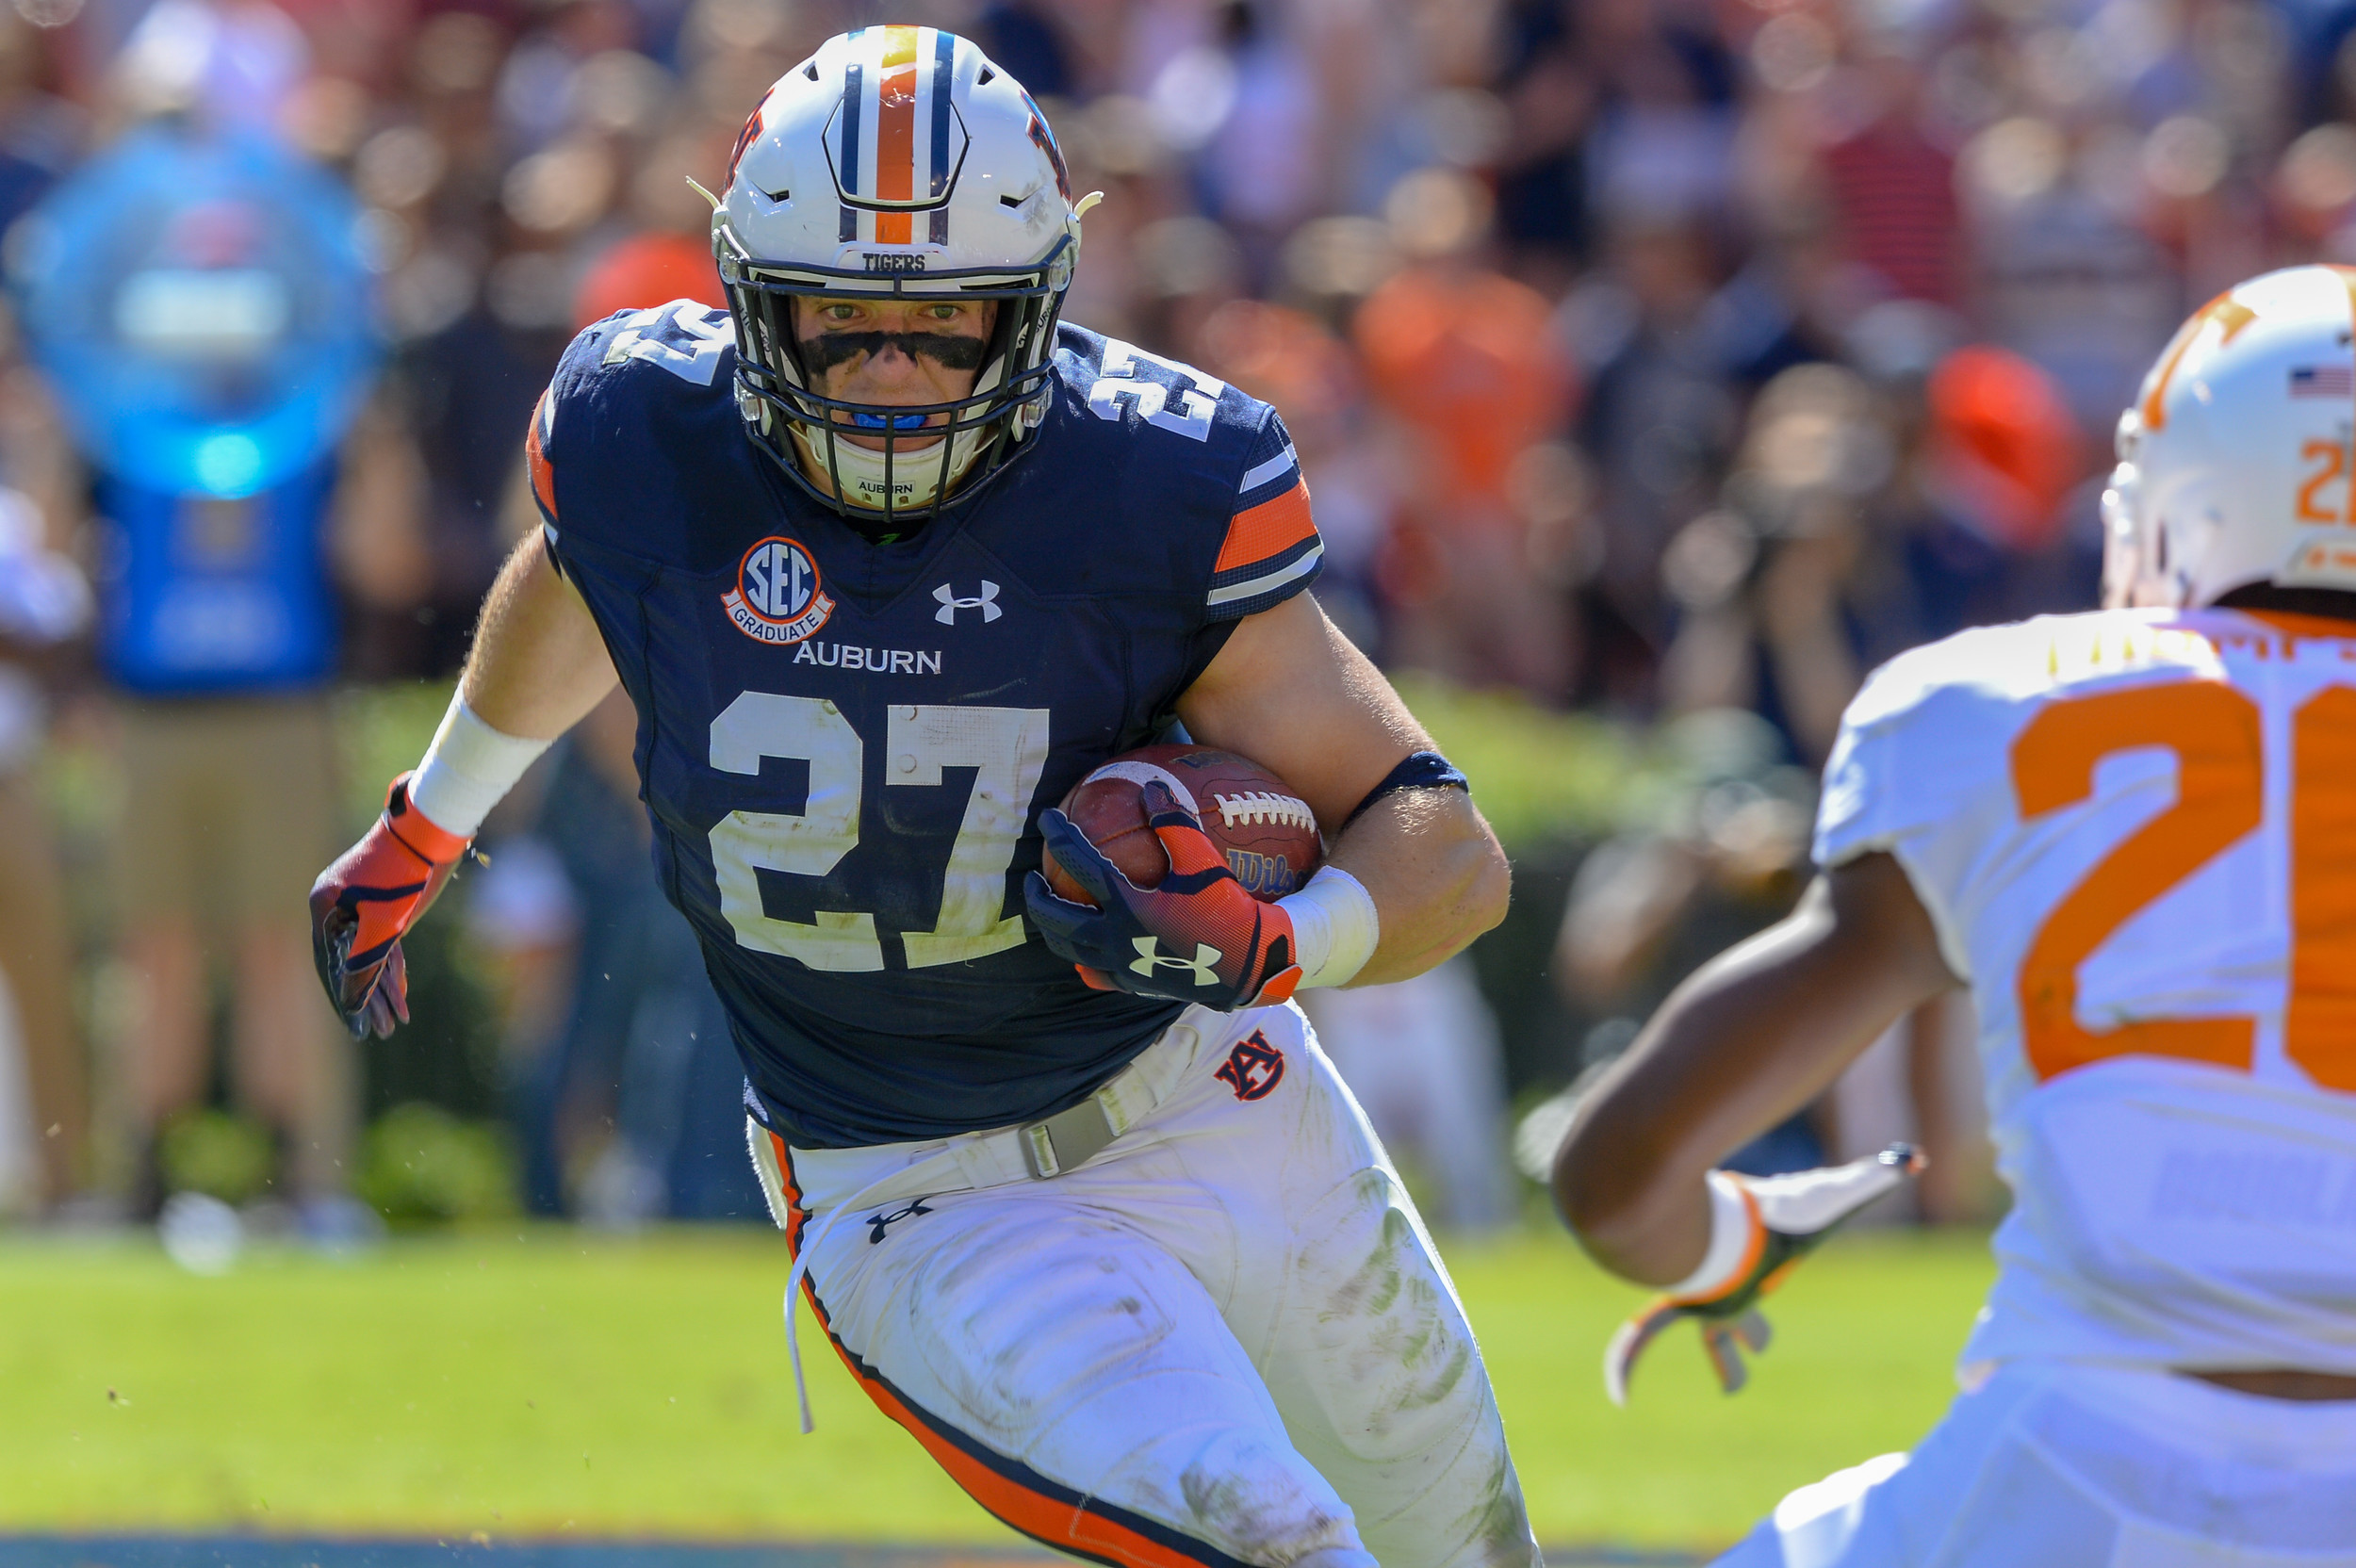 Auburn Tigers fullback Chandler Cox runs during the first half of Saturday's game, at Jordan-Hare Stadium in Auburn, AL. Daily Mountain Eagle -  Jeff Johnsey